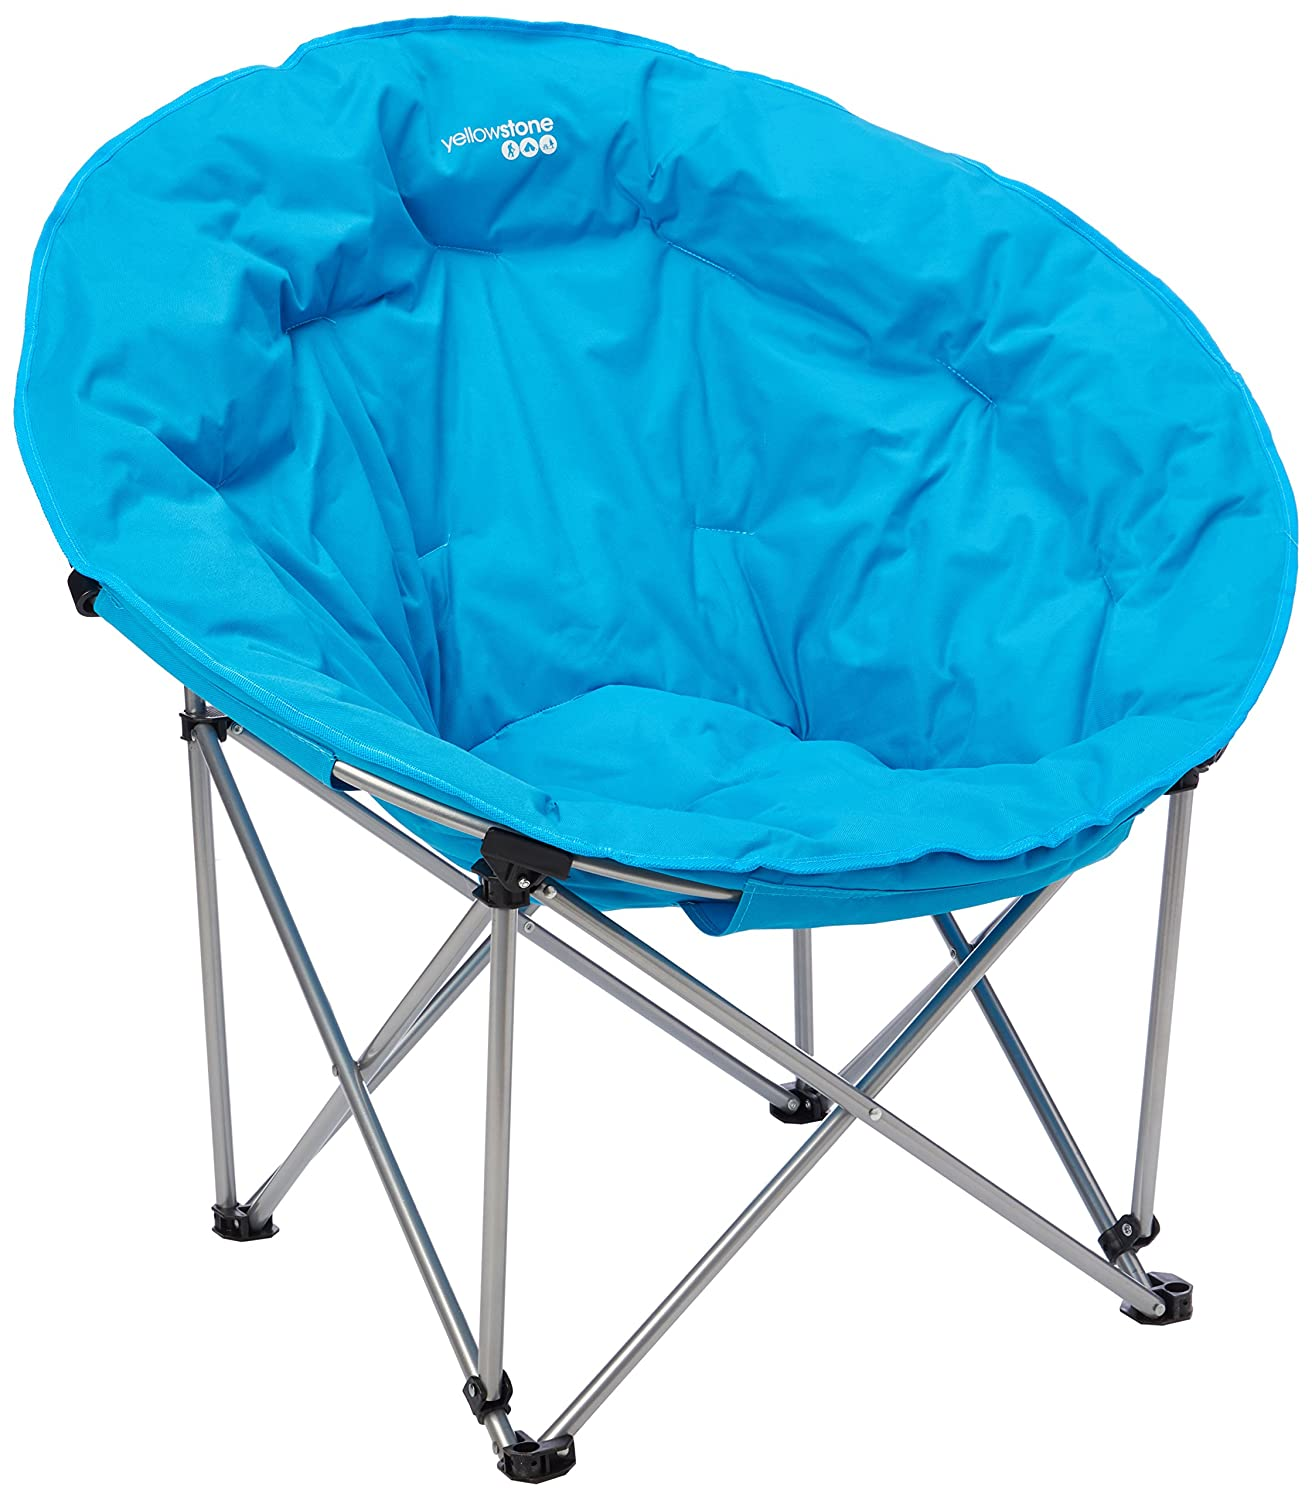 Yellowstone Deluxe Orbit Chair Blue Amazon Sports & Outdoors